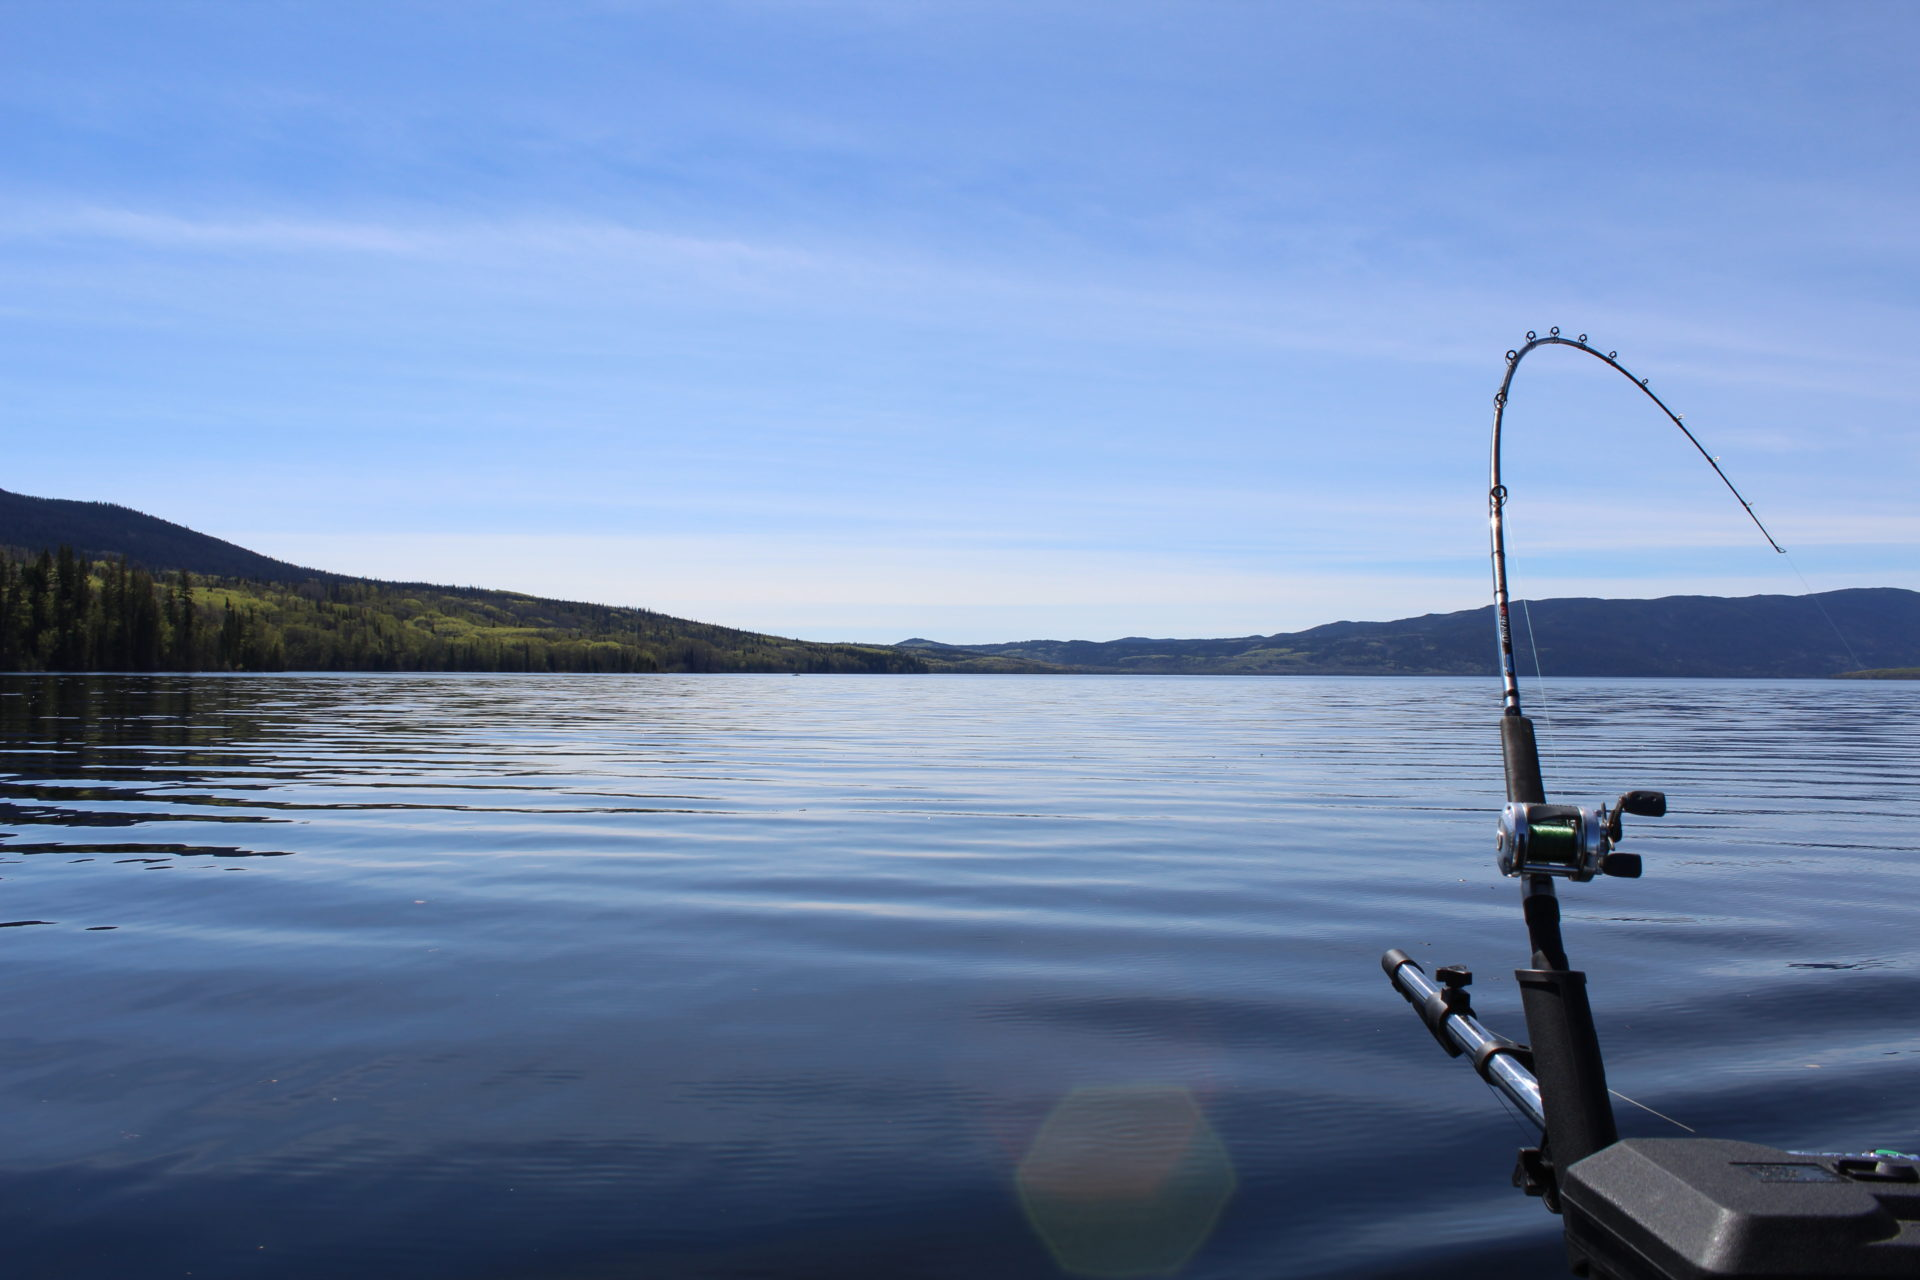 François Lake is a favourite fishing destination in the author's family, so be sure to add it to your must-fish list.